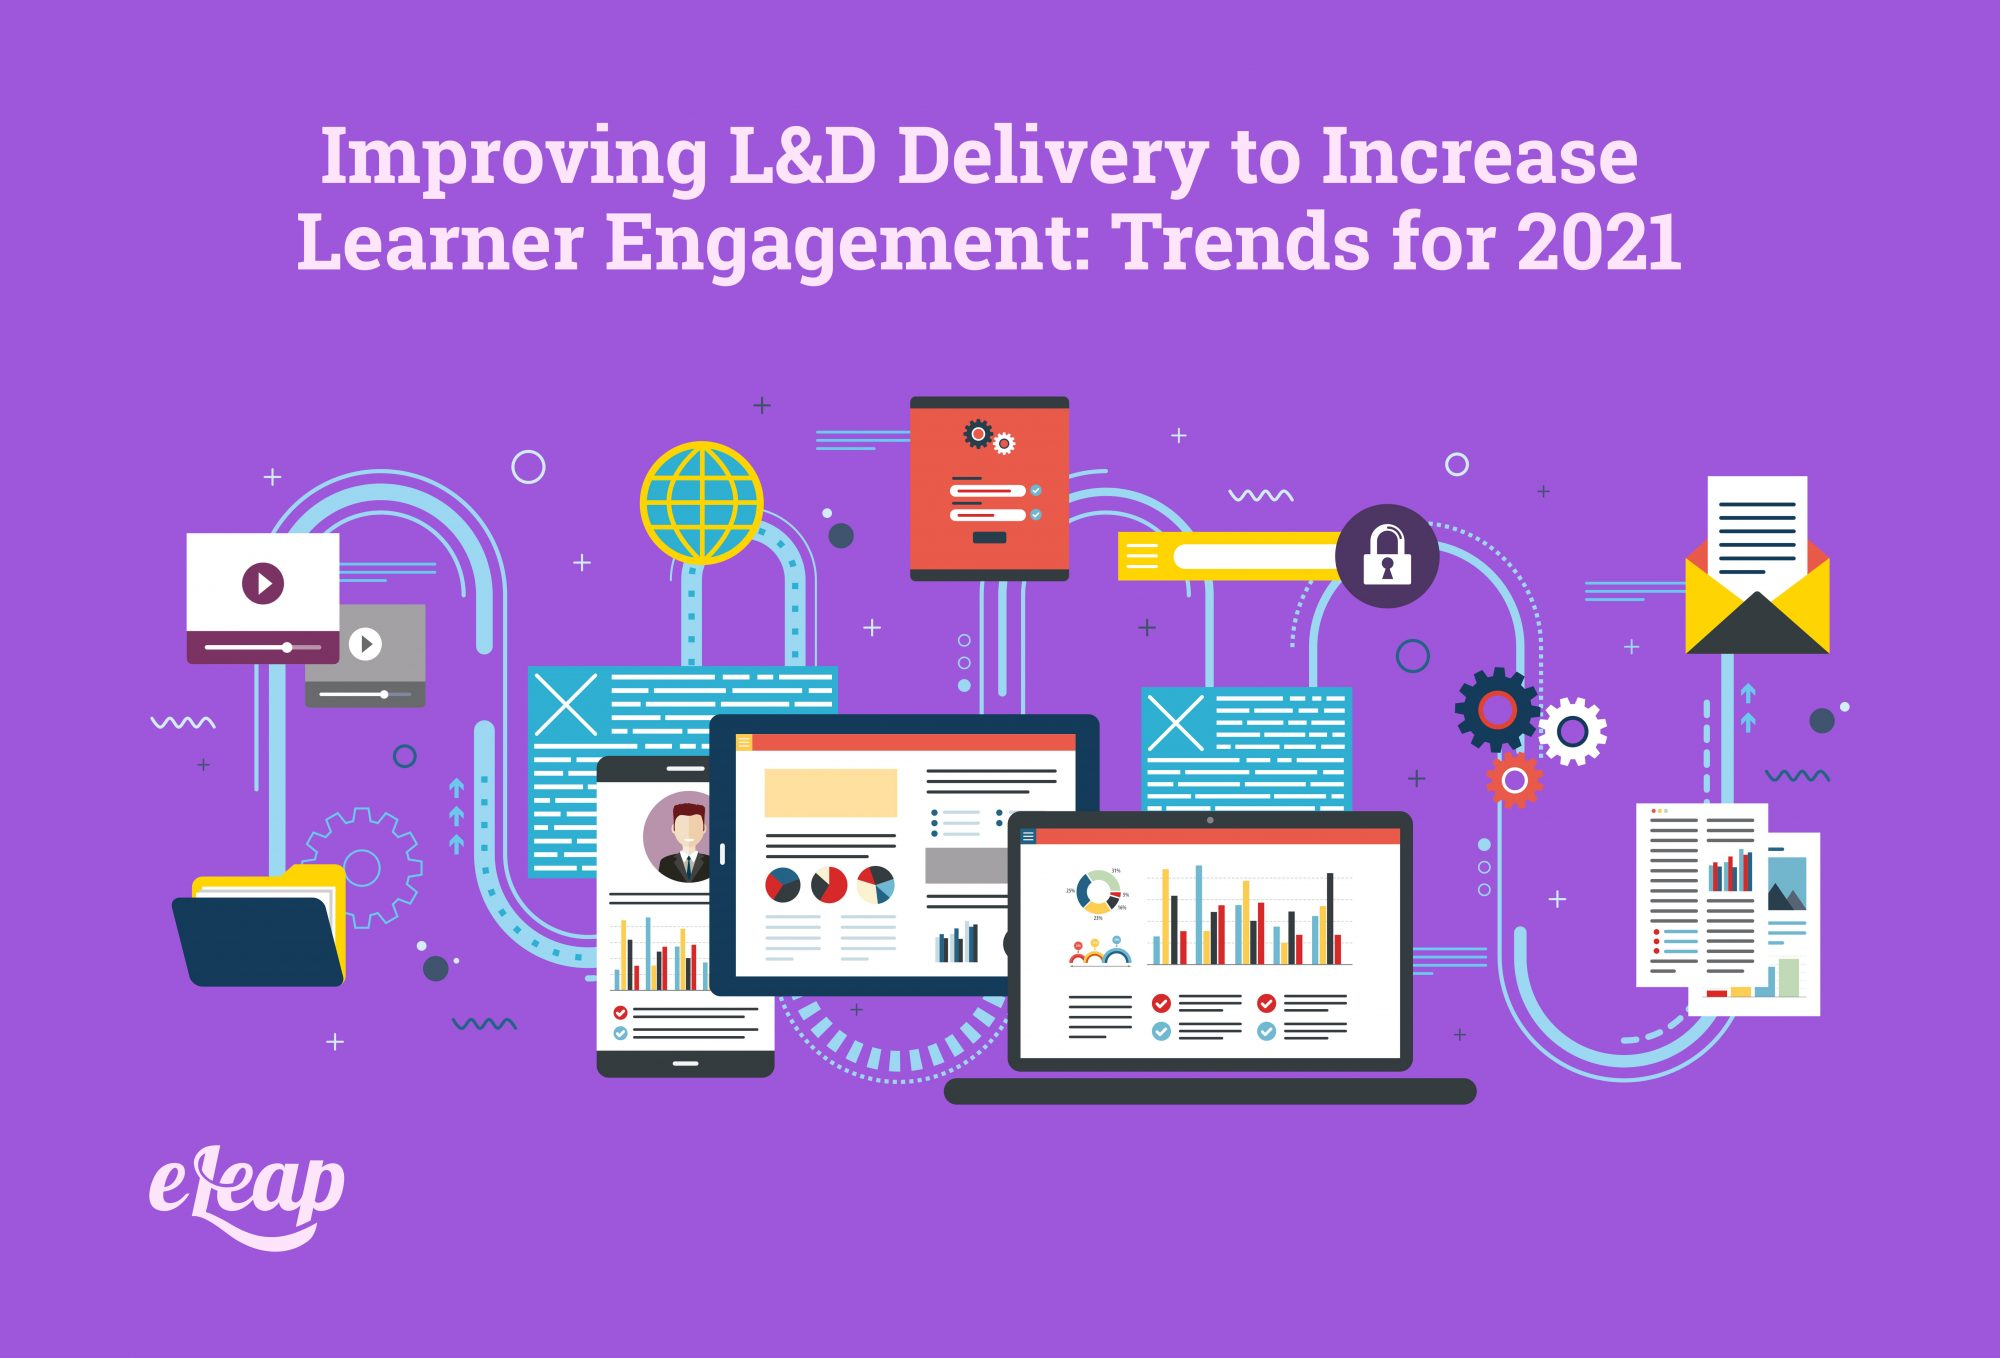 Improving L&D Delivery to Increase Learner Engagement: Trends for 2021